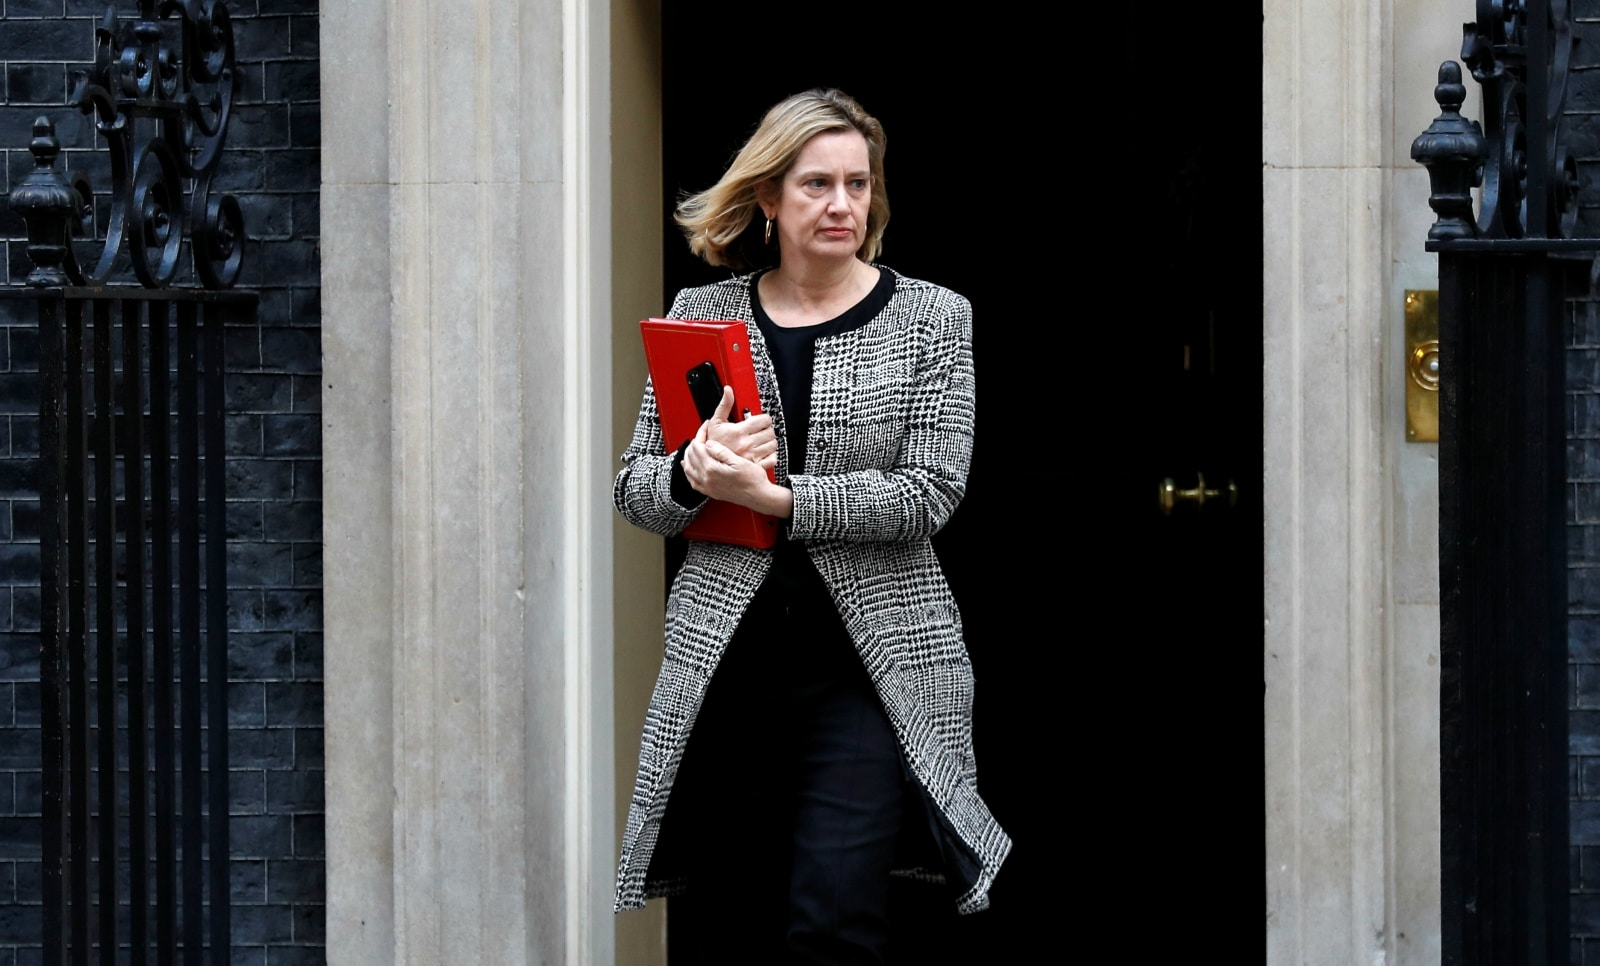 AMBER RUDD, 55. Rudd resigned as interior minister last year after facing an outpouring of indignation over her department's treatment of some long-term Caribbean residents who were wrongly labelled illegal immigrants. She could win support from pro-EU lawmakers in the Conservative Party. But she struggled to retain her seat at the 2017 election and has one of the smallest majorities in parliament.